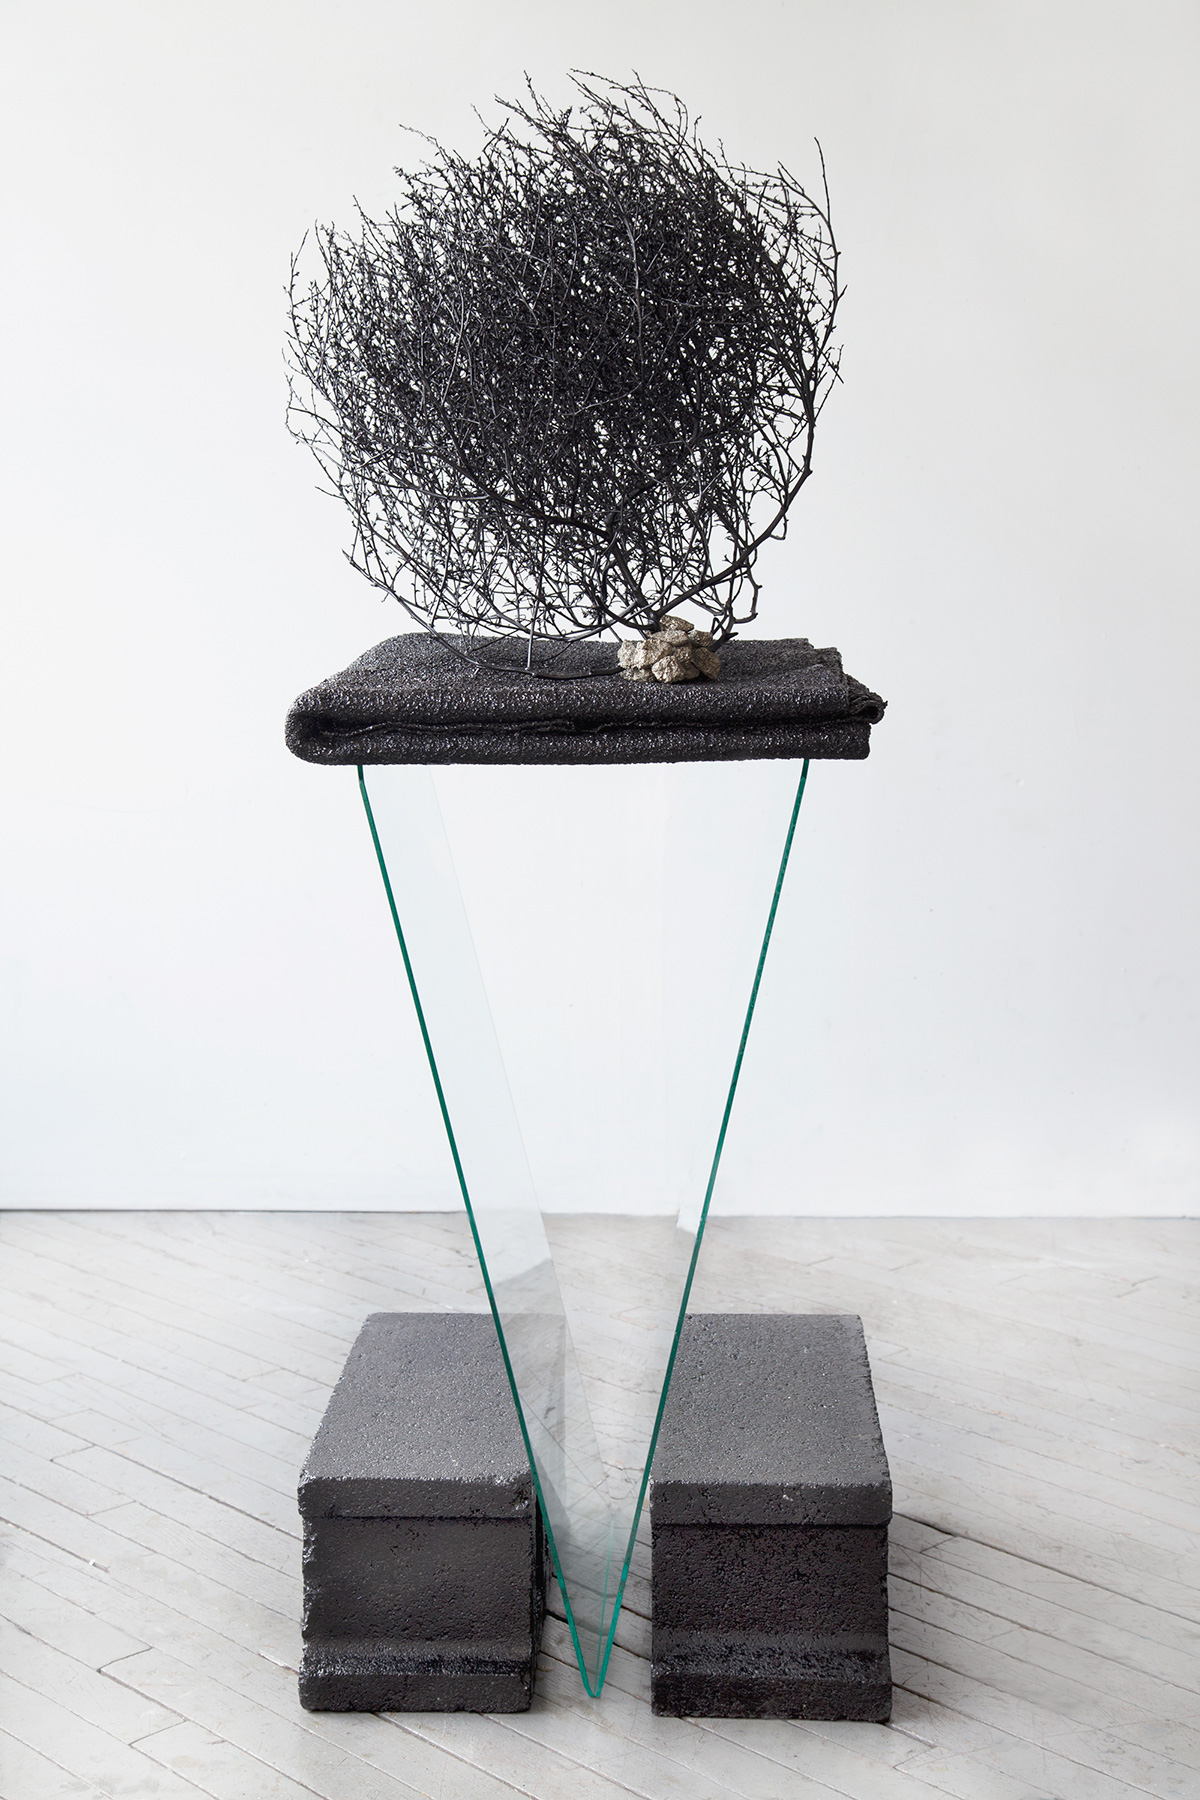 Stephanie Powell                                     'The goal is to levitate,' 2014                                     50 x 20 x 18 Inches                                     lacquer, tumbleweed, fool's gold, wool, cement